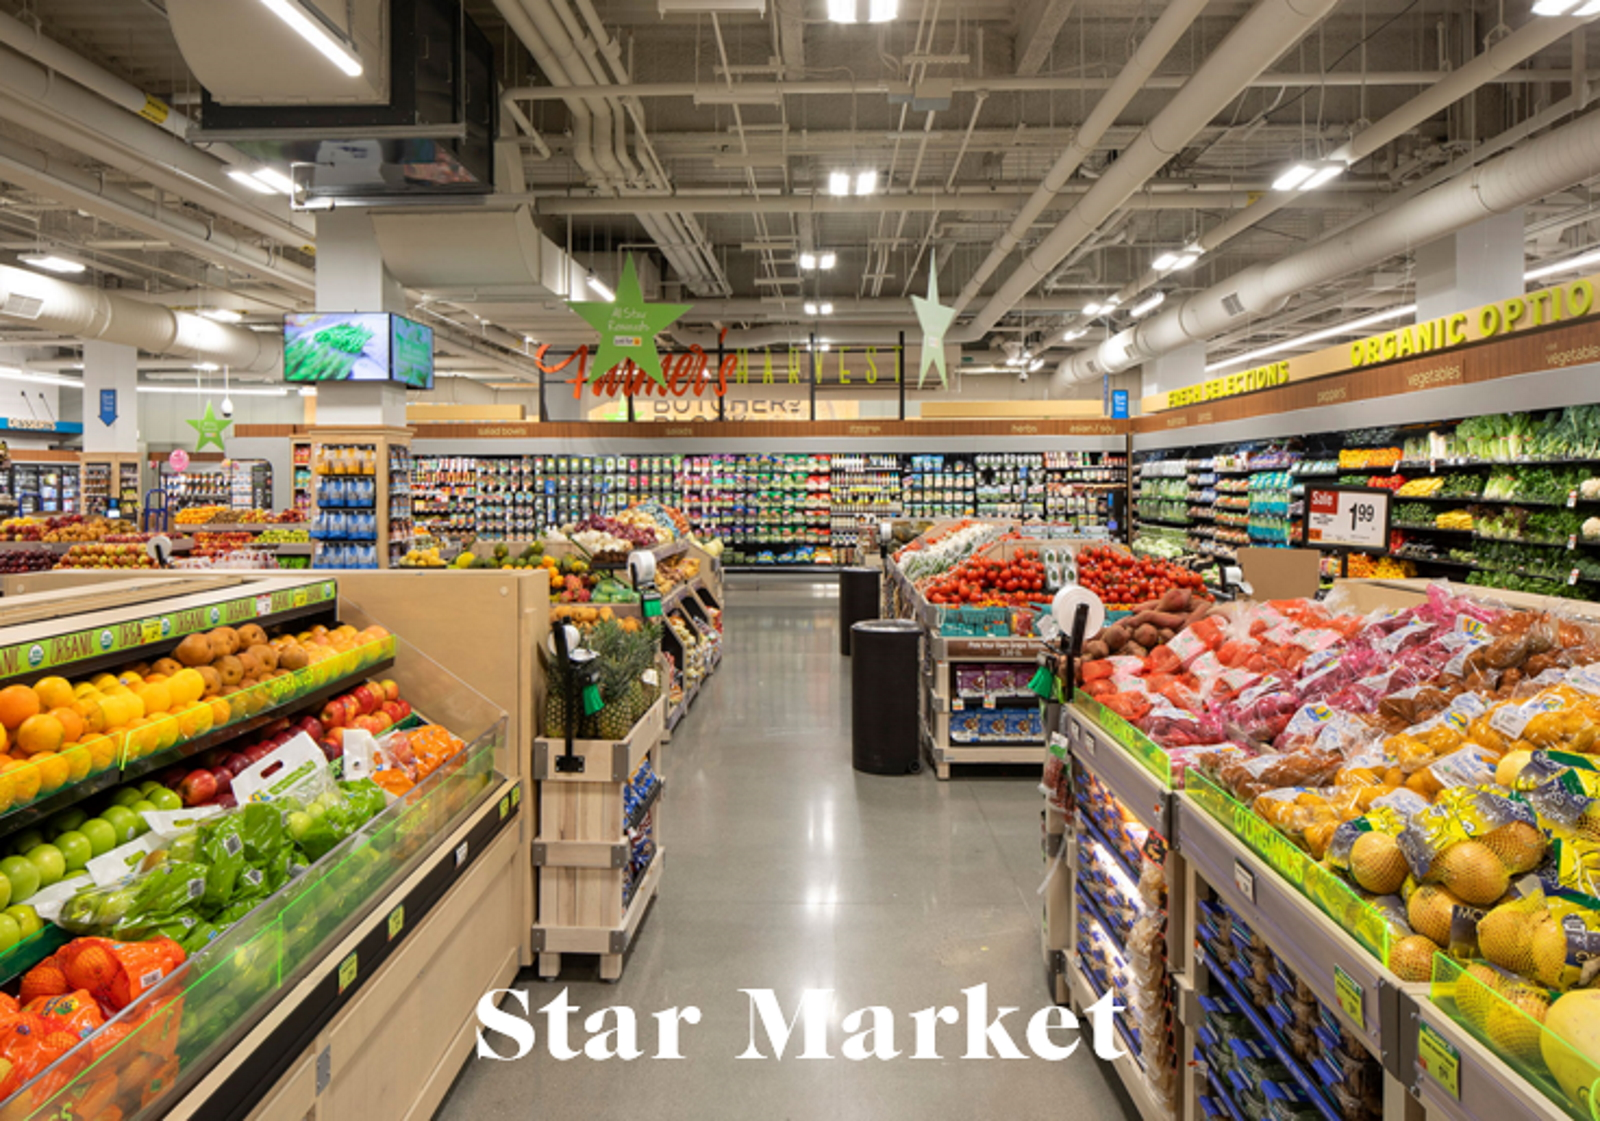 Star market retail tour food missions mmm 0